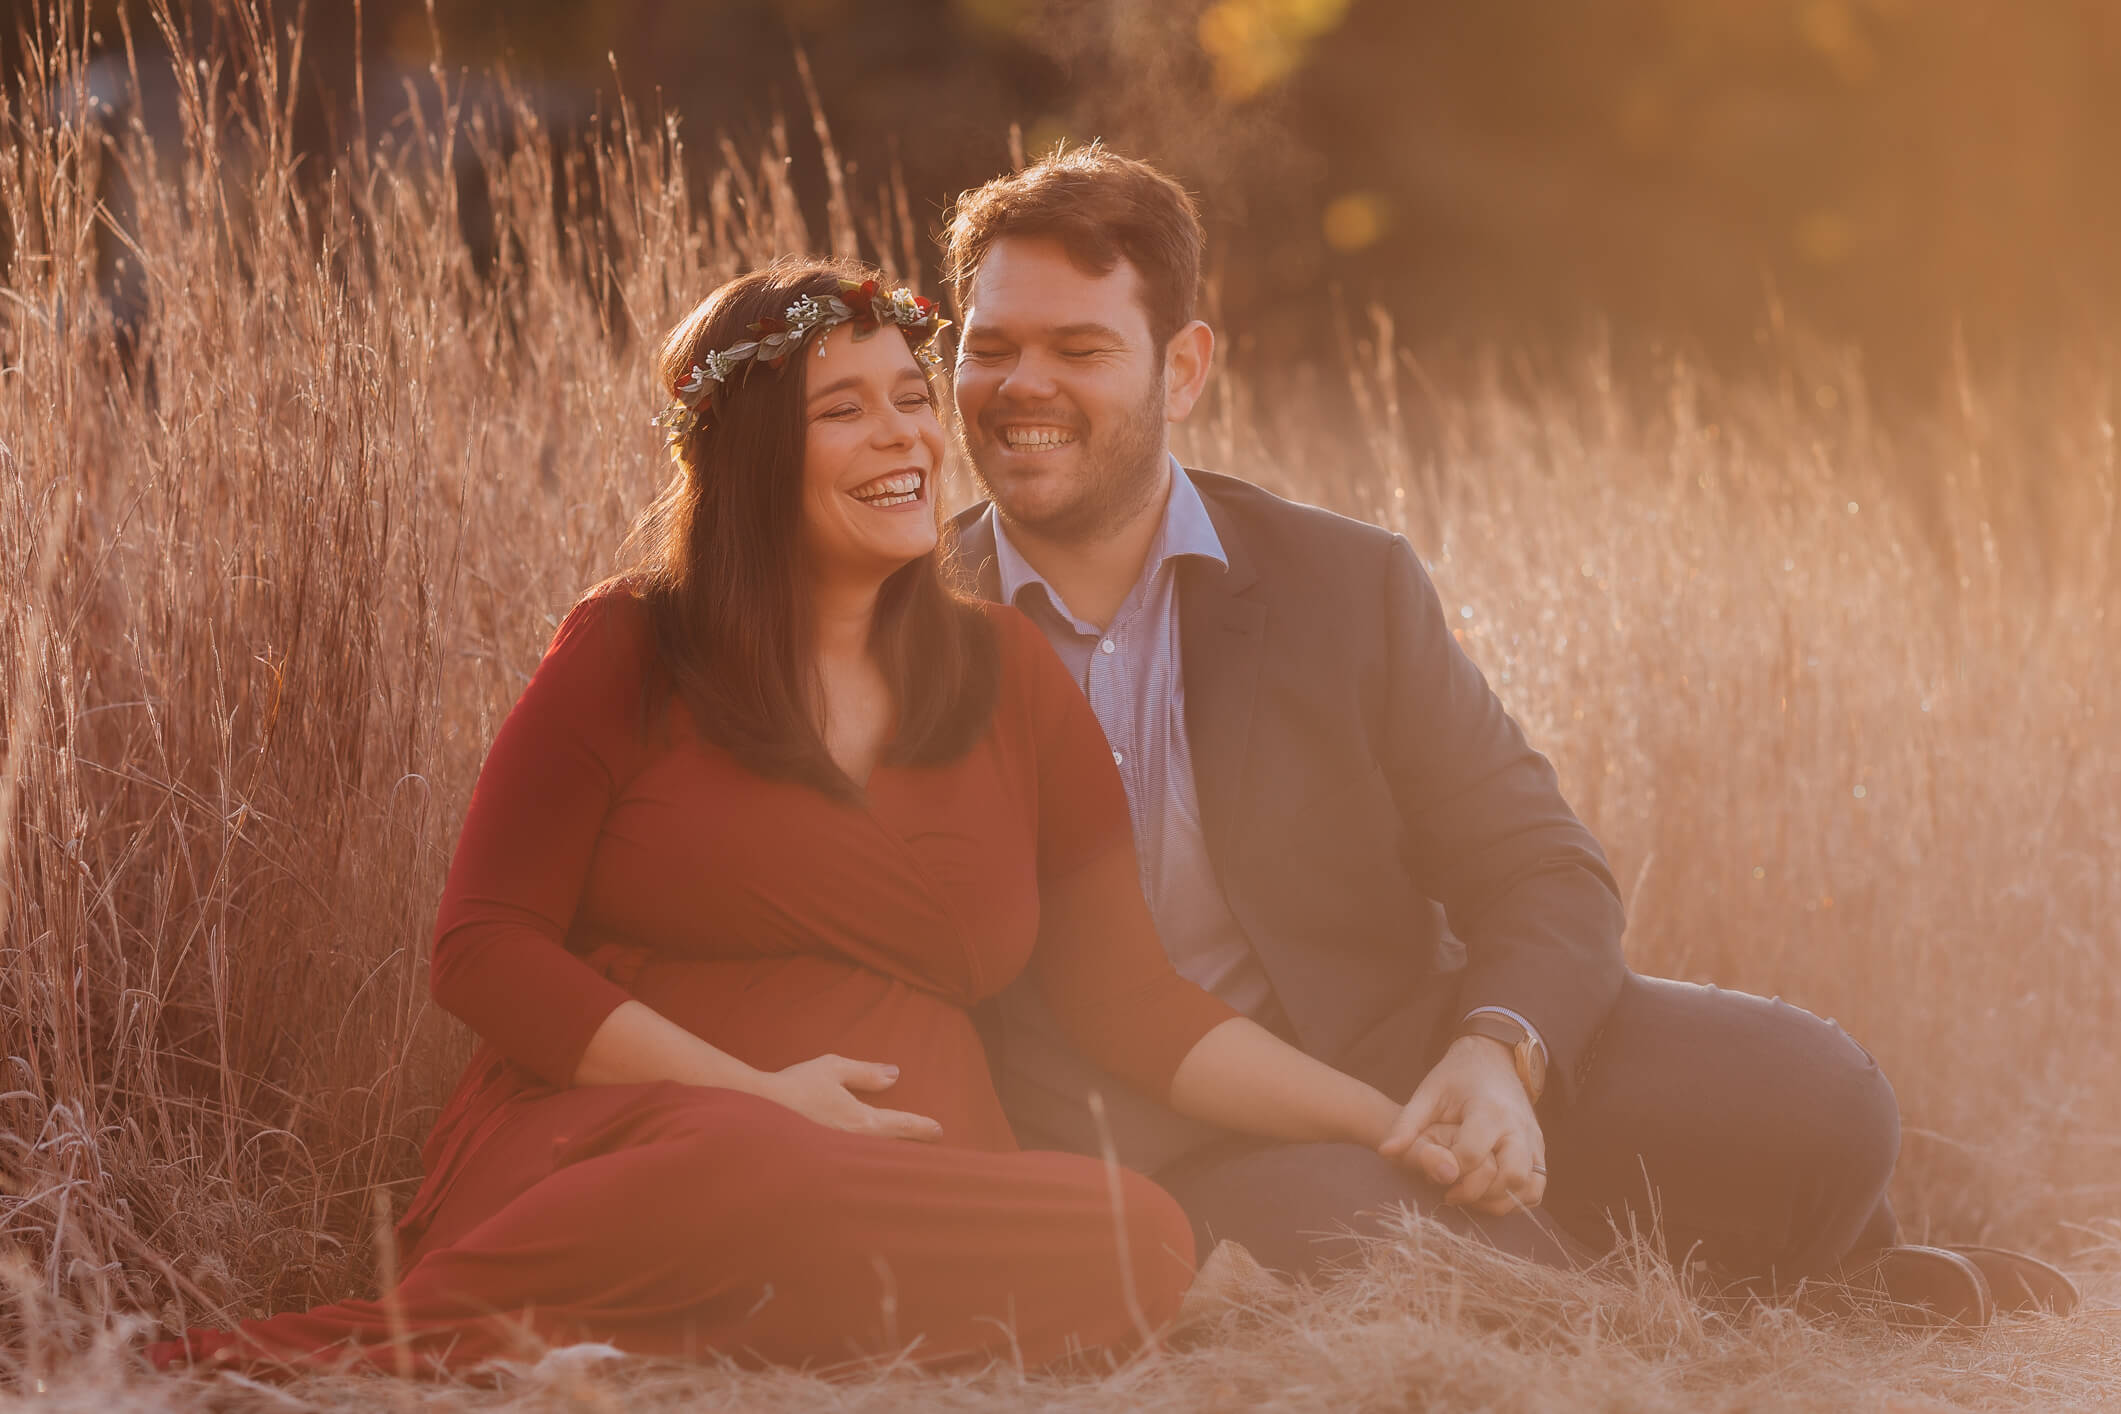 Pregnancy Maternity Photography - Fine Art Portraits, Boston-35